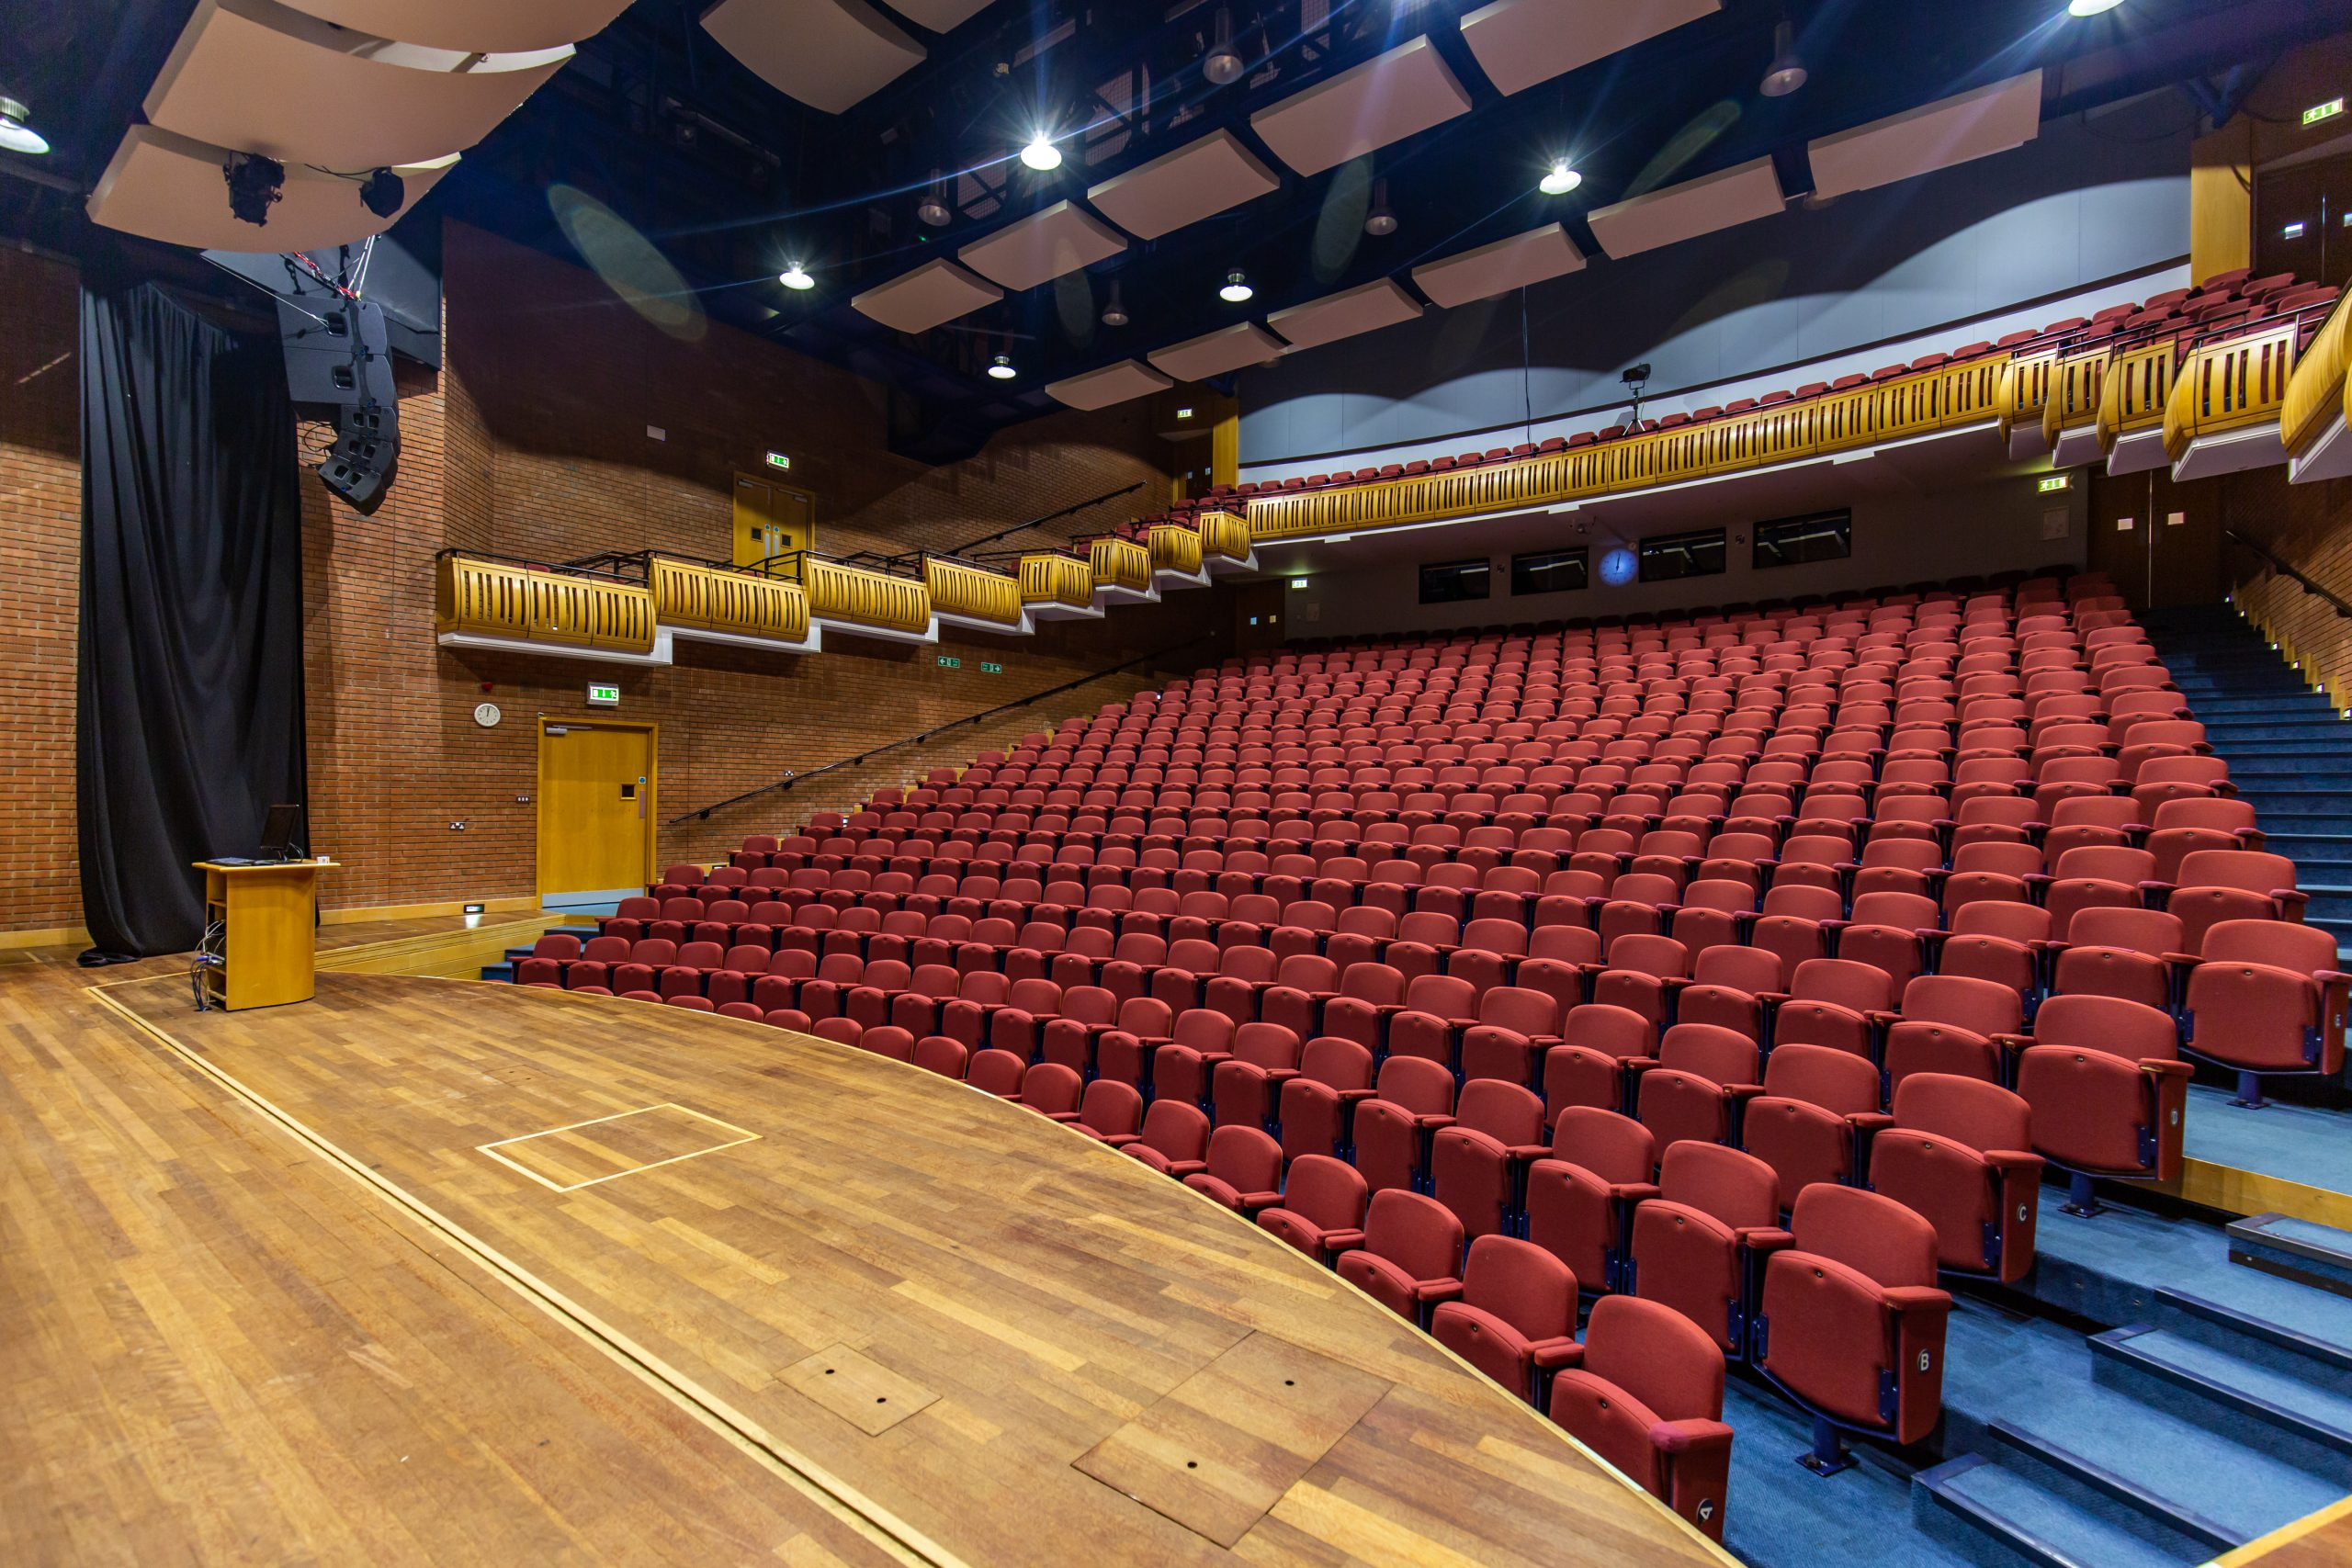 Woldingham_Venue-Hire_Auditorium